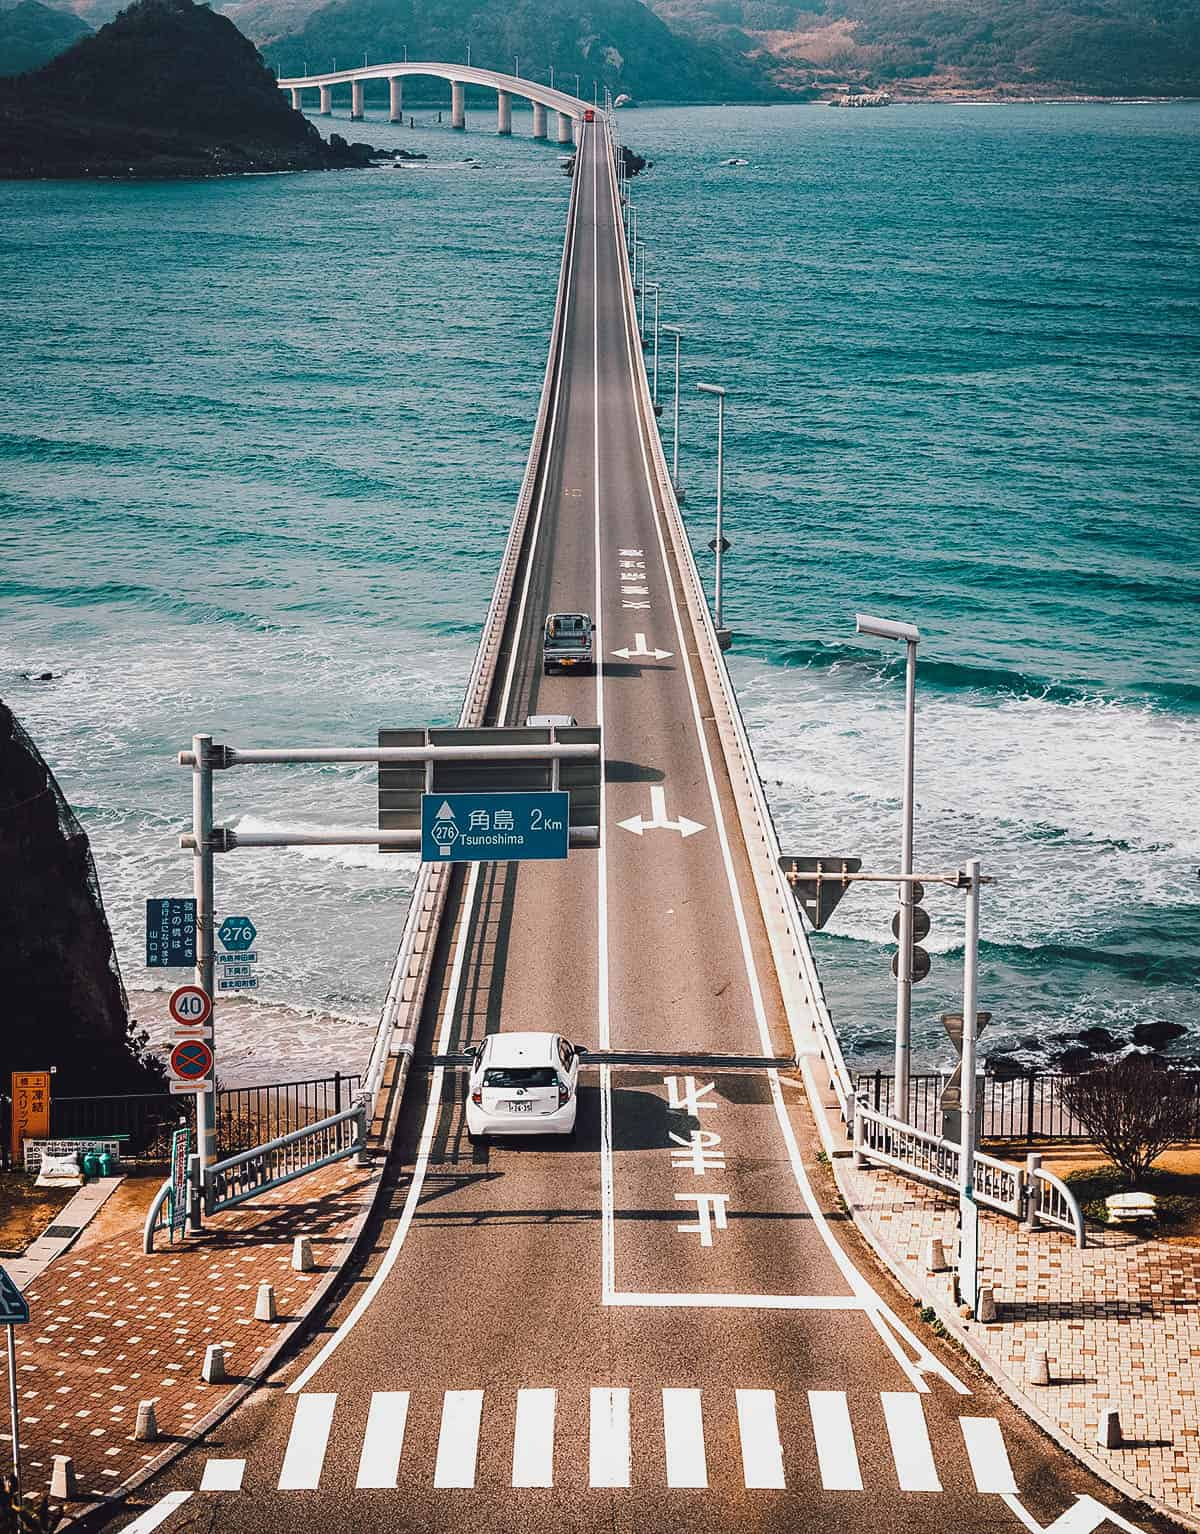 Driving on Tsunoshima Bridge